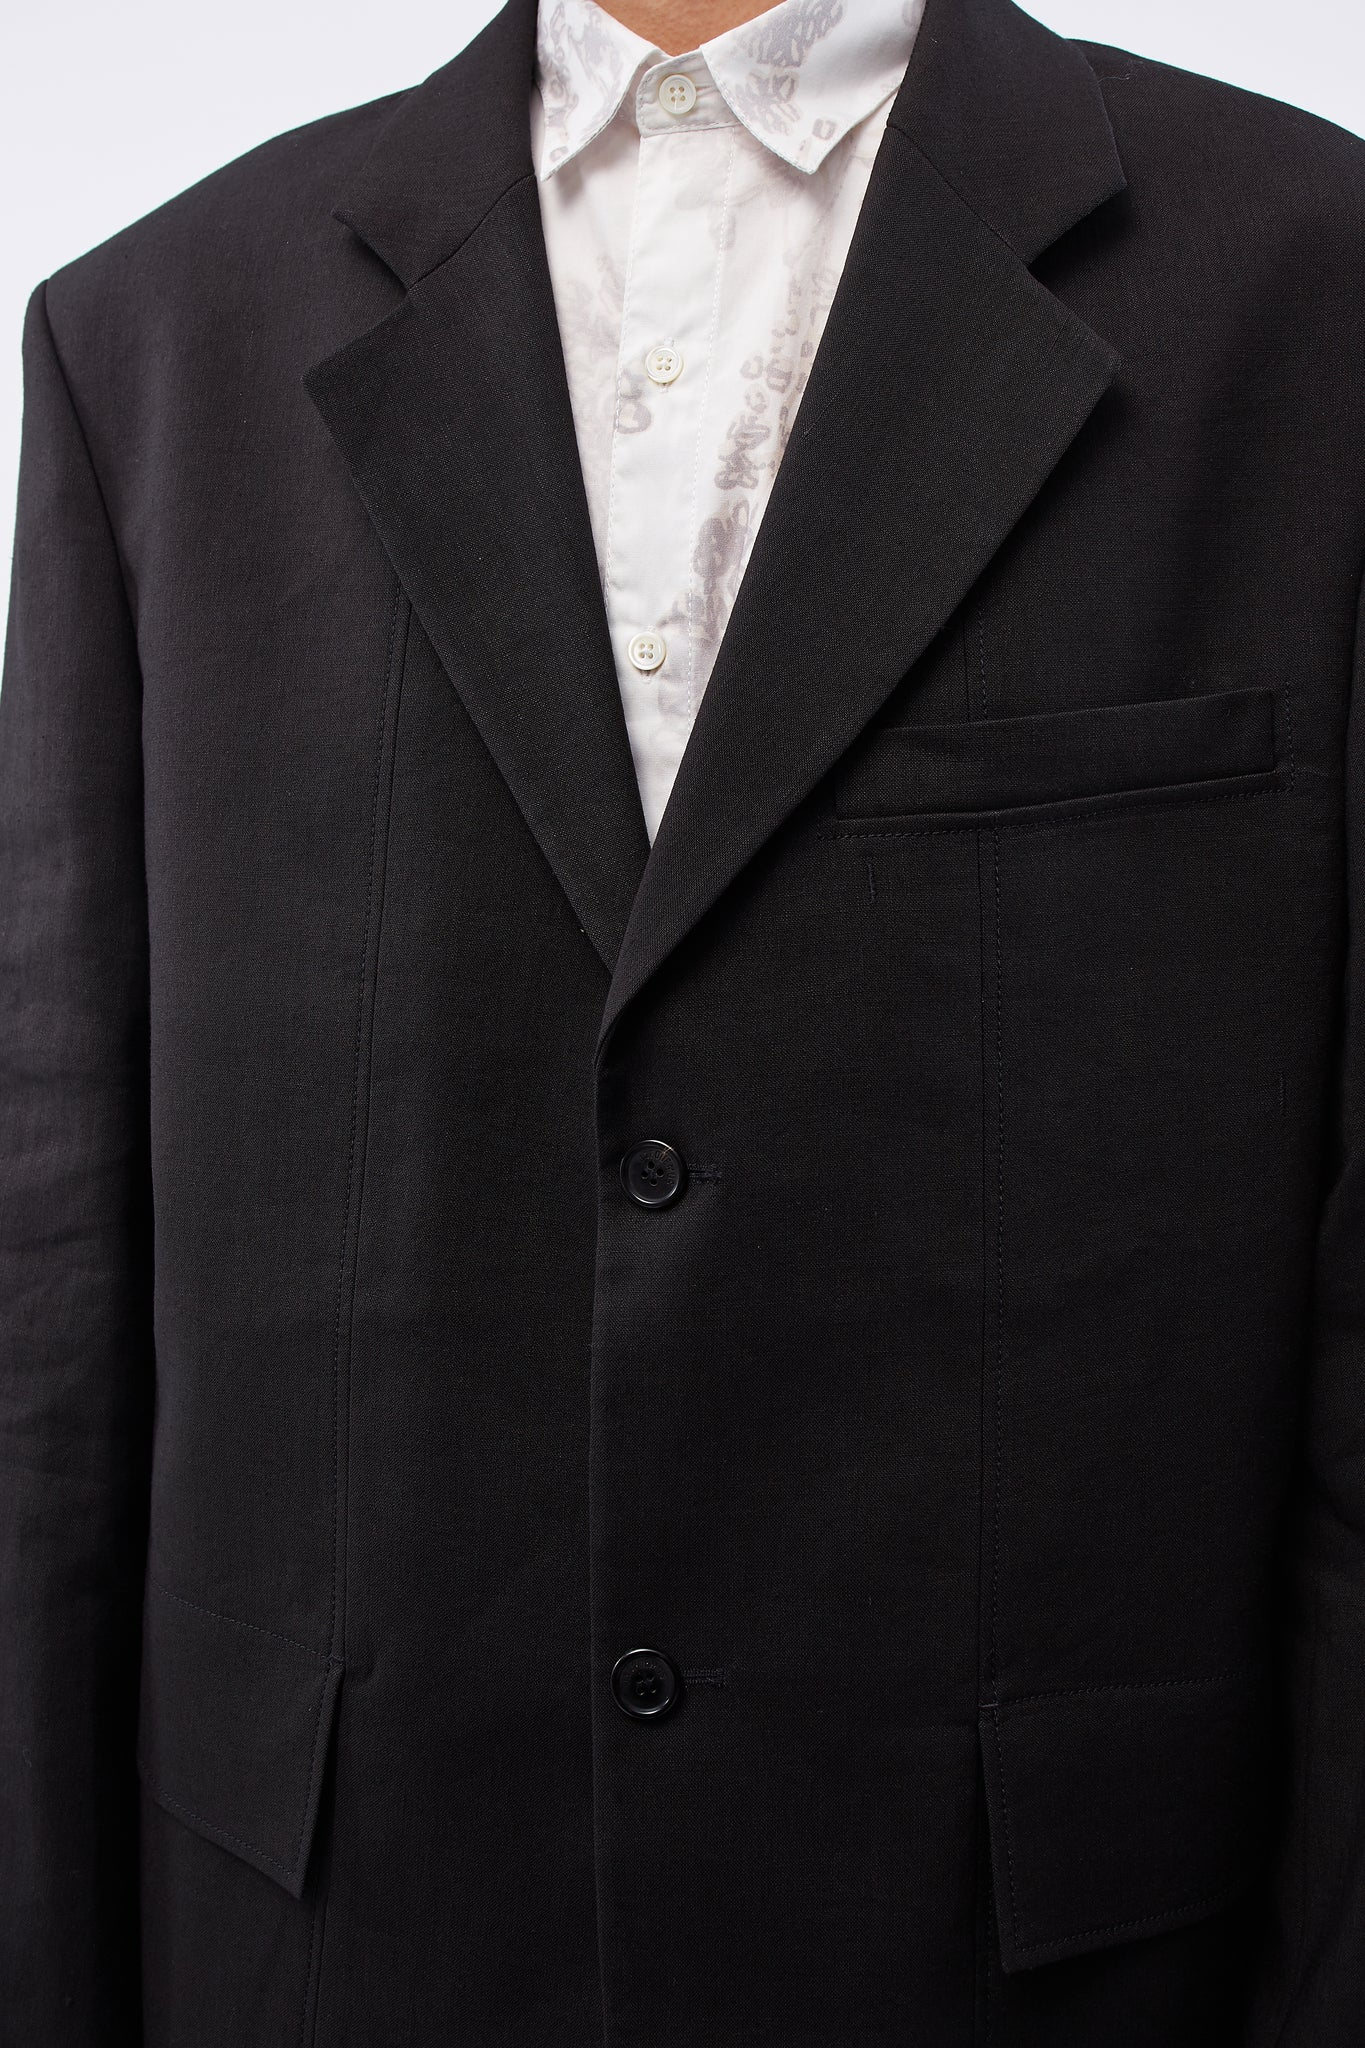 La Veste De Costume Jackets Black